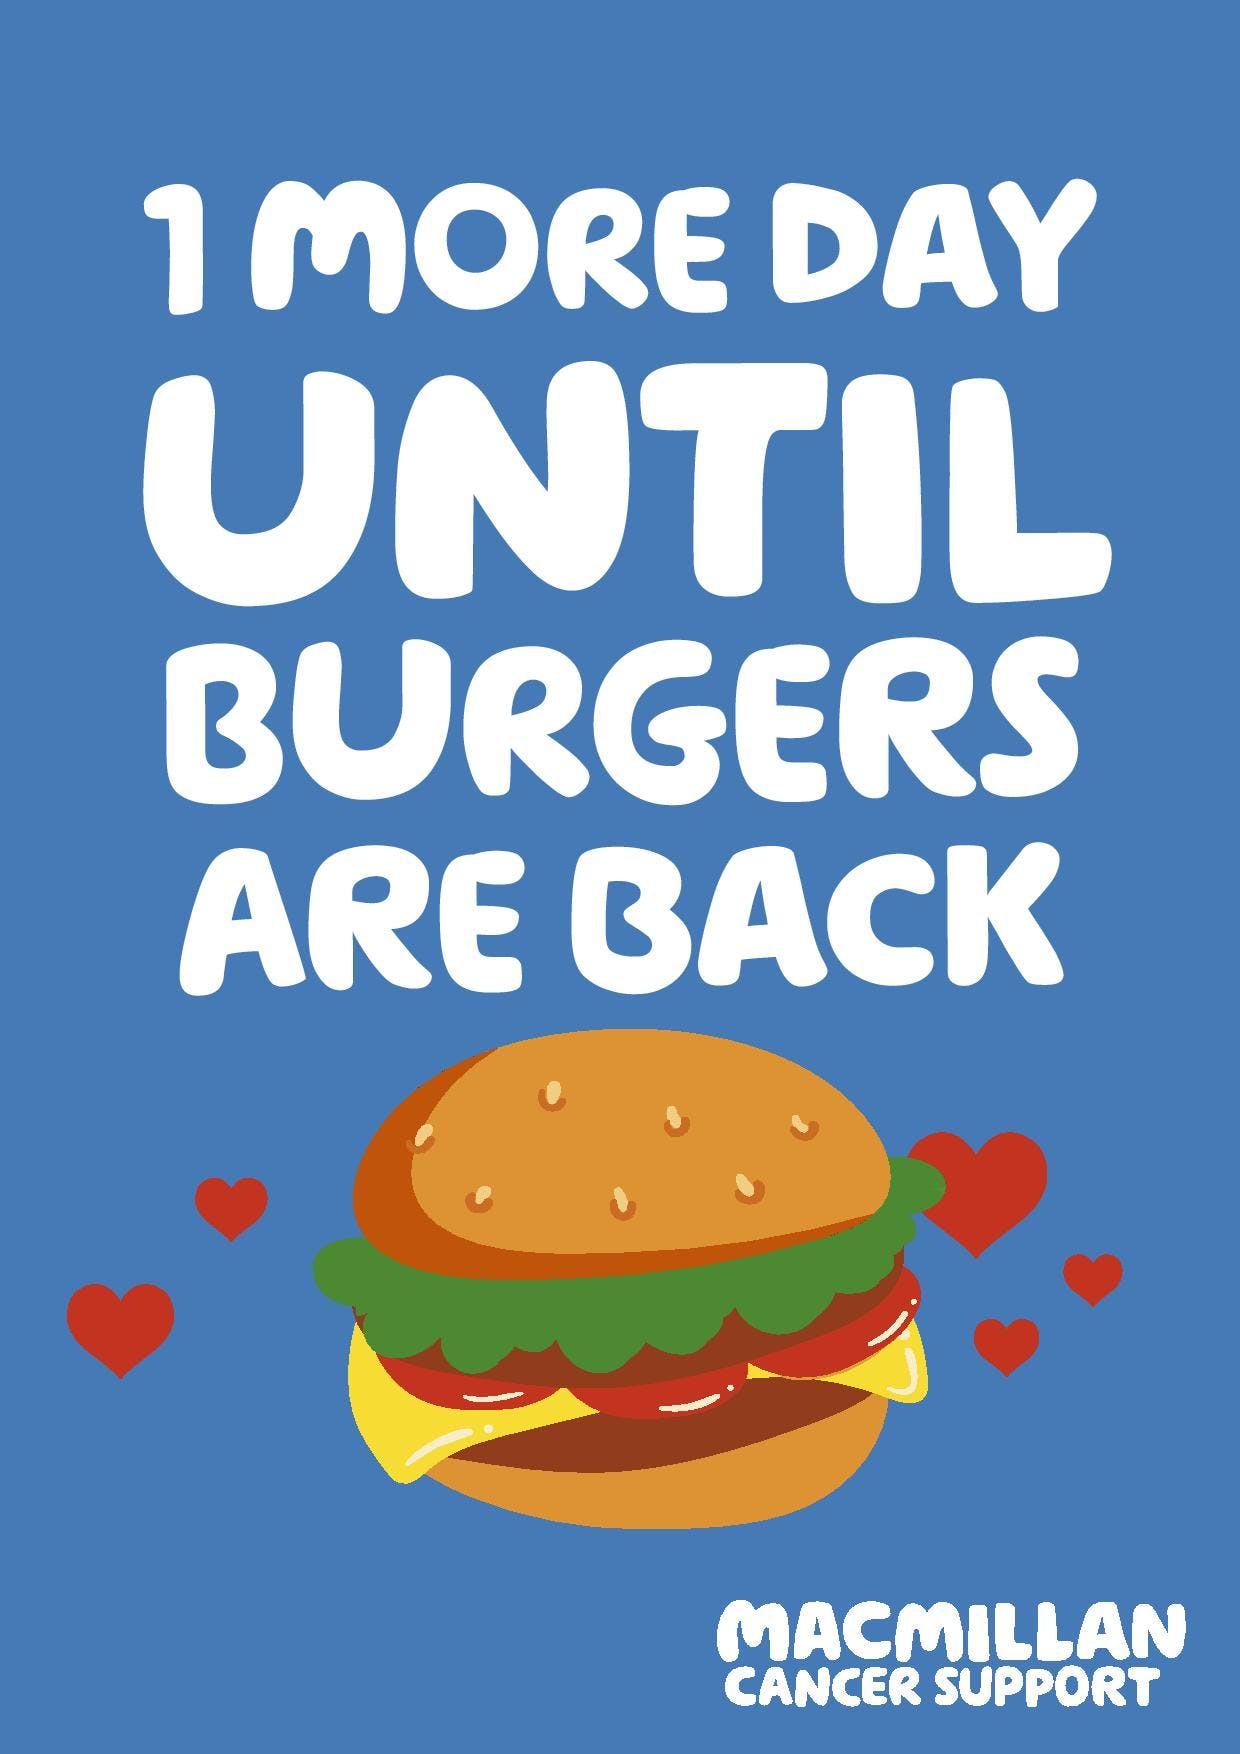 BLUE BACKGROUND: 1 more day until burgers are back